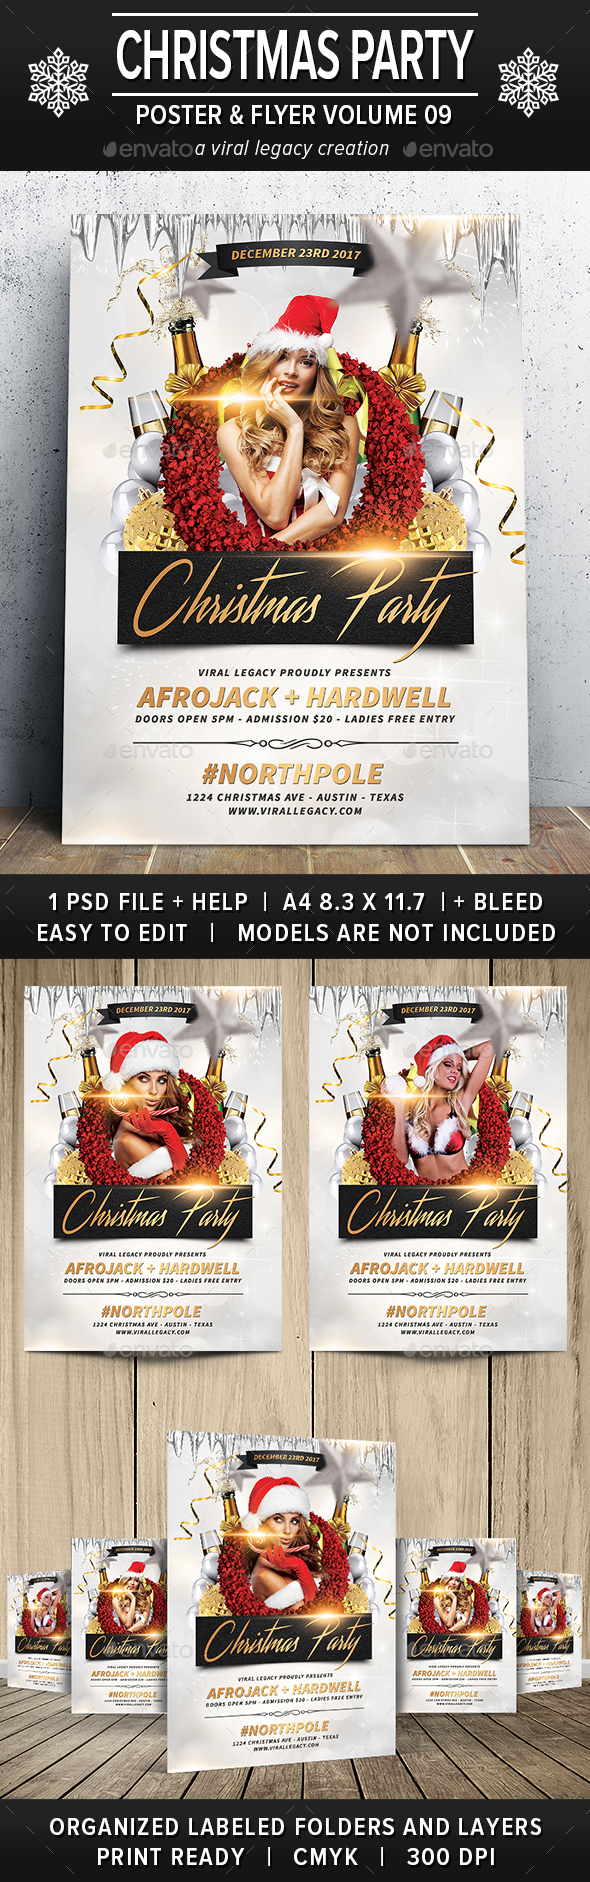 Christmas Party Poster / Flyer V09 - Flyers Print Templates